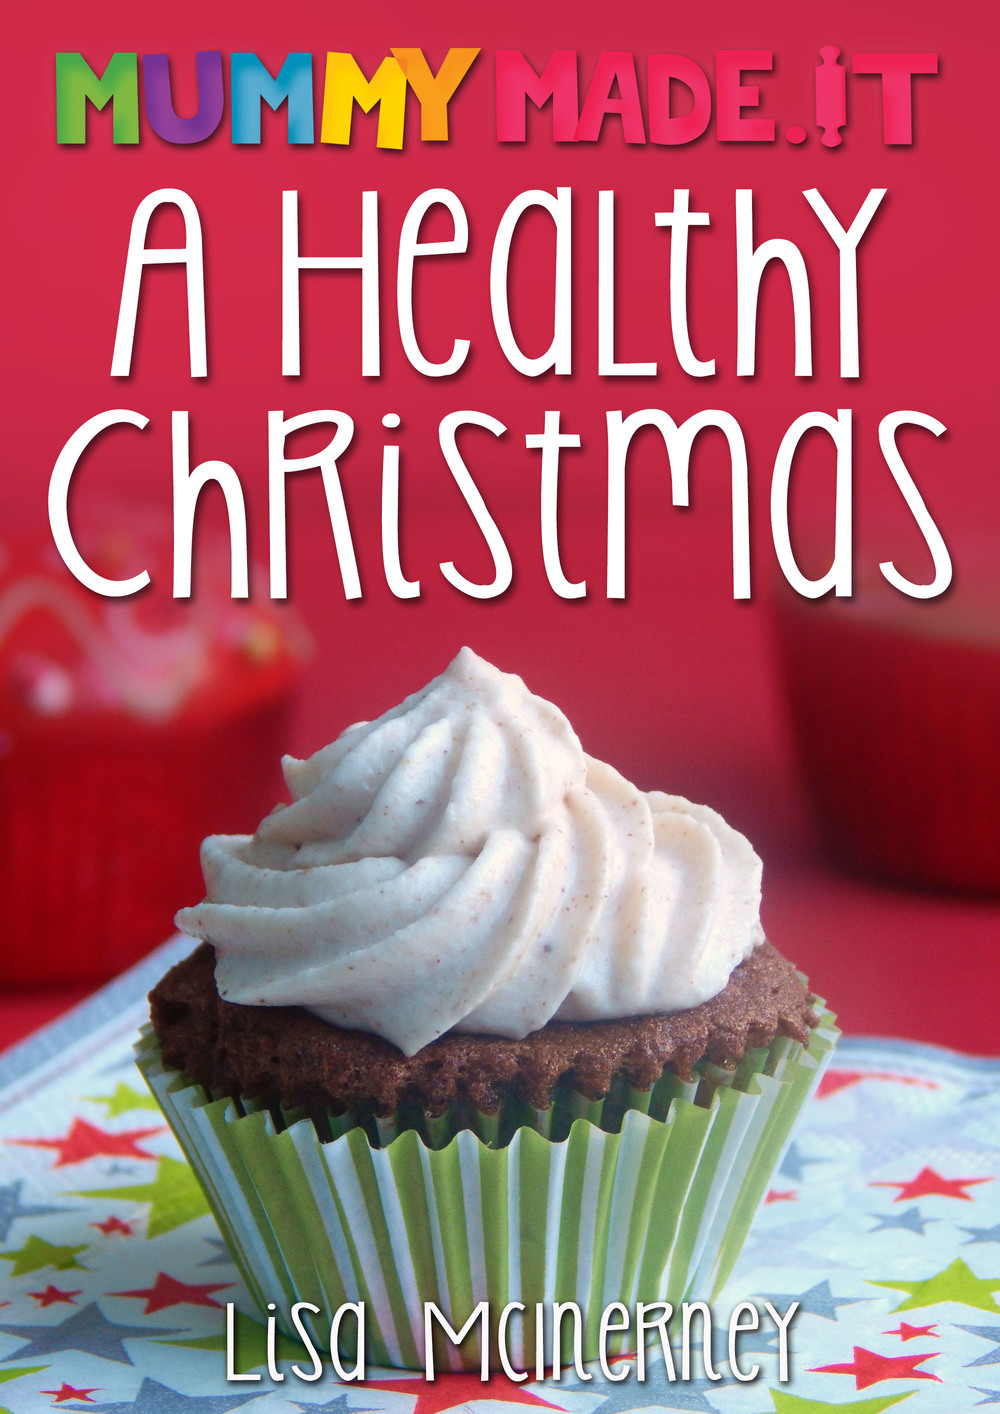 Mummy-made.it-a-healthy-christmas